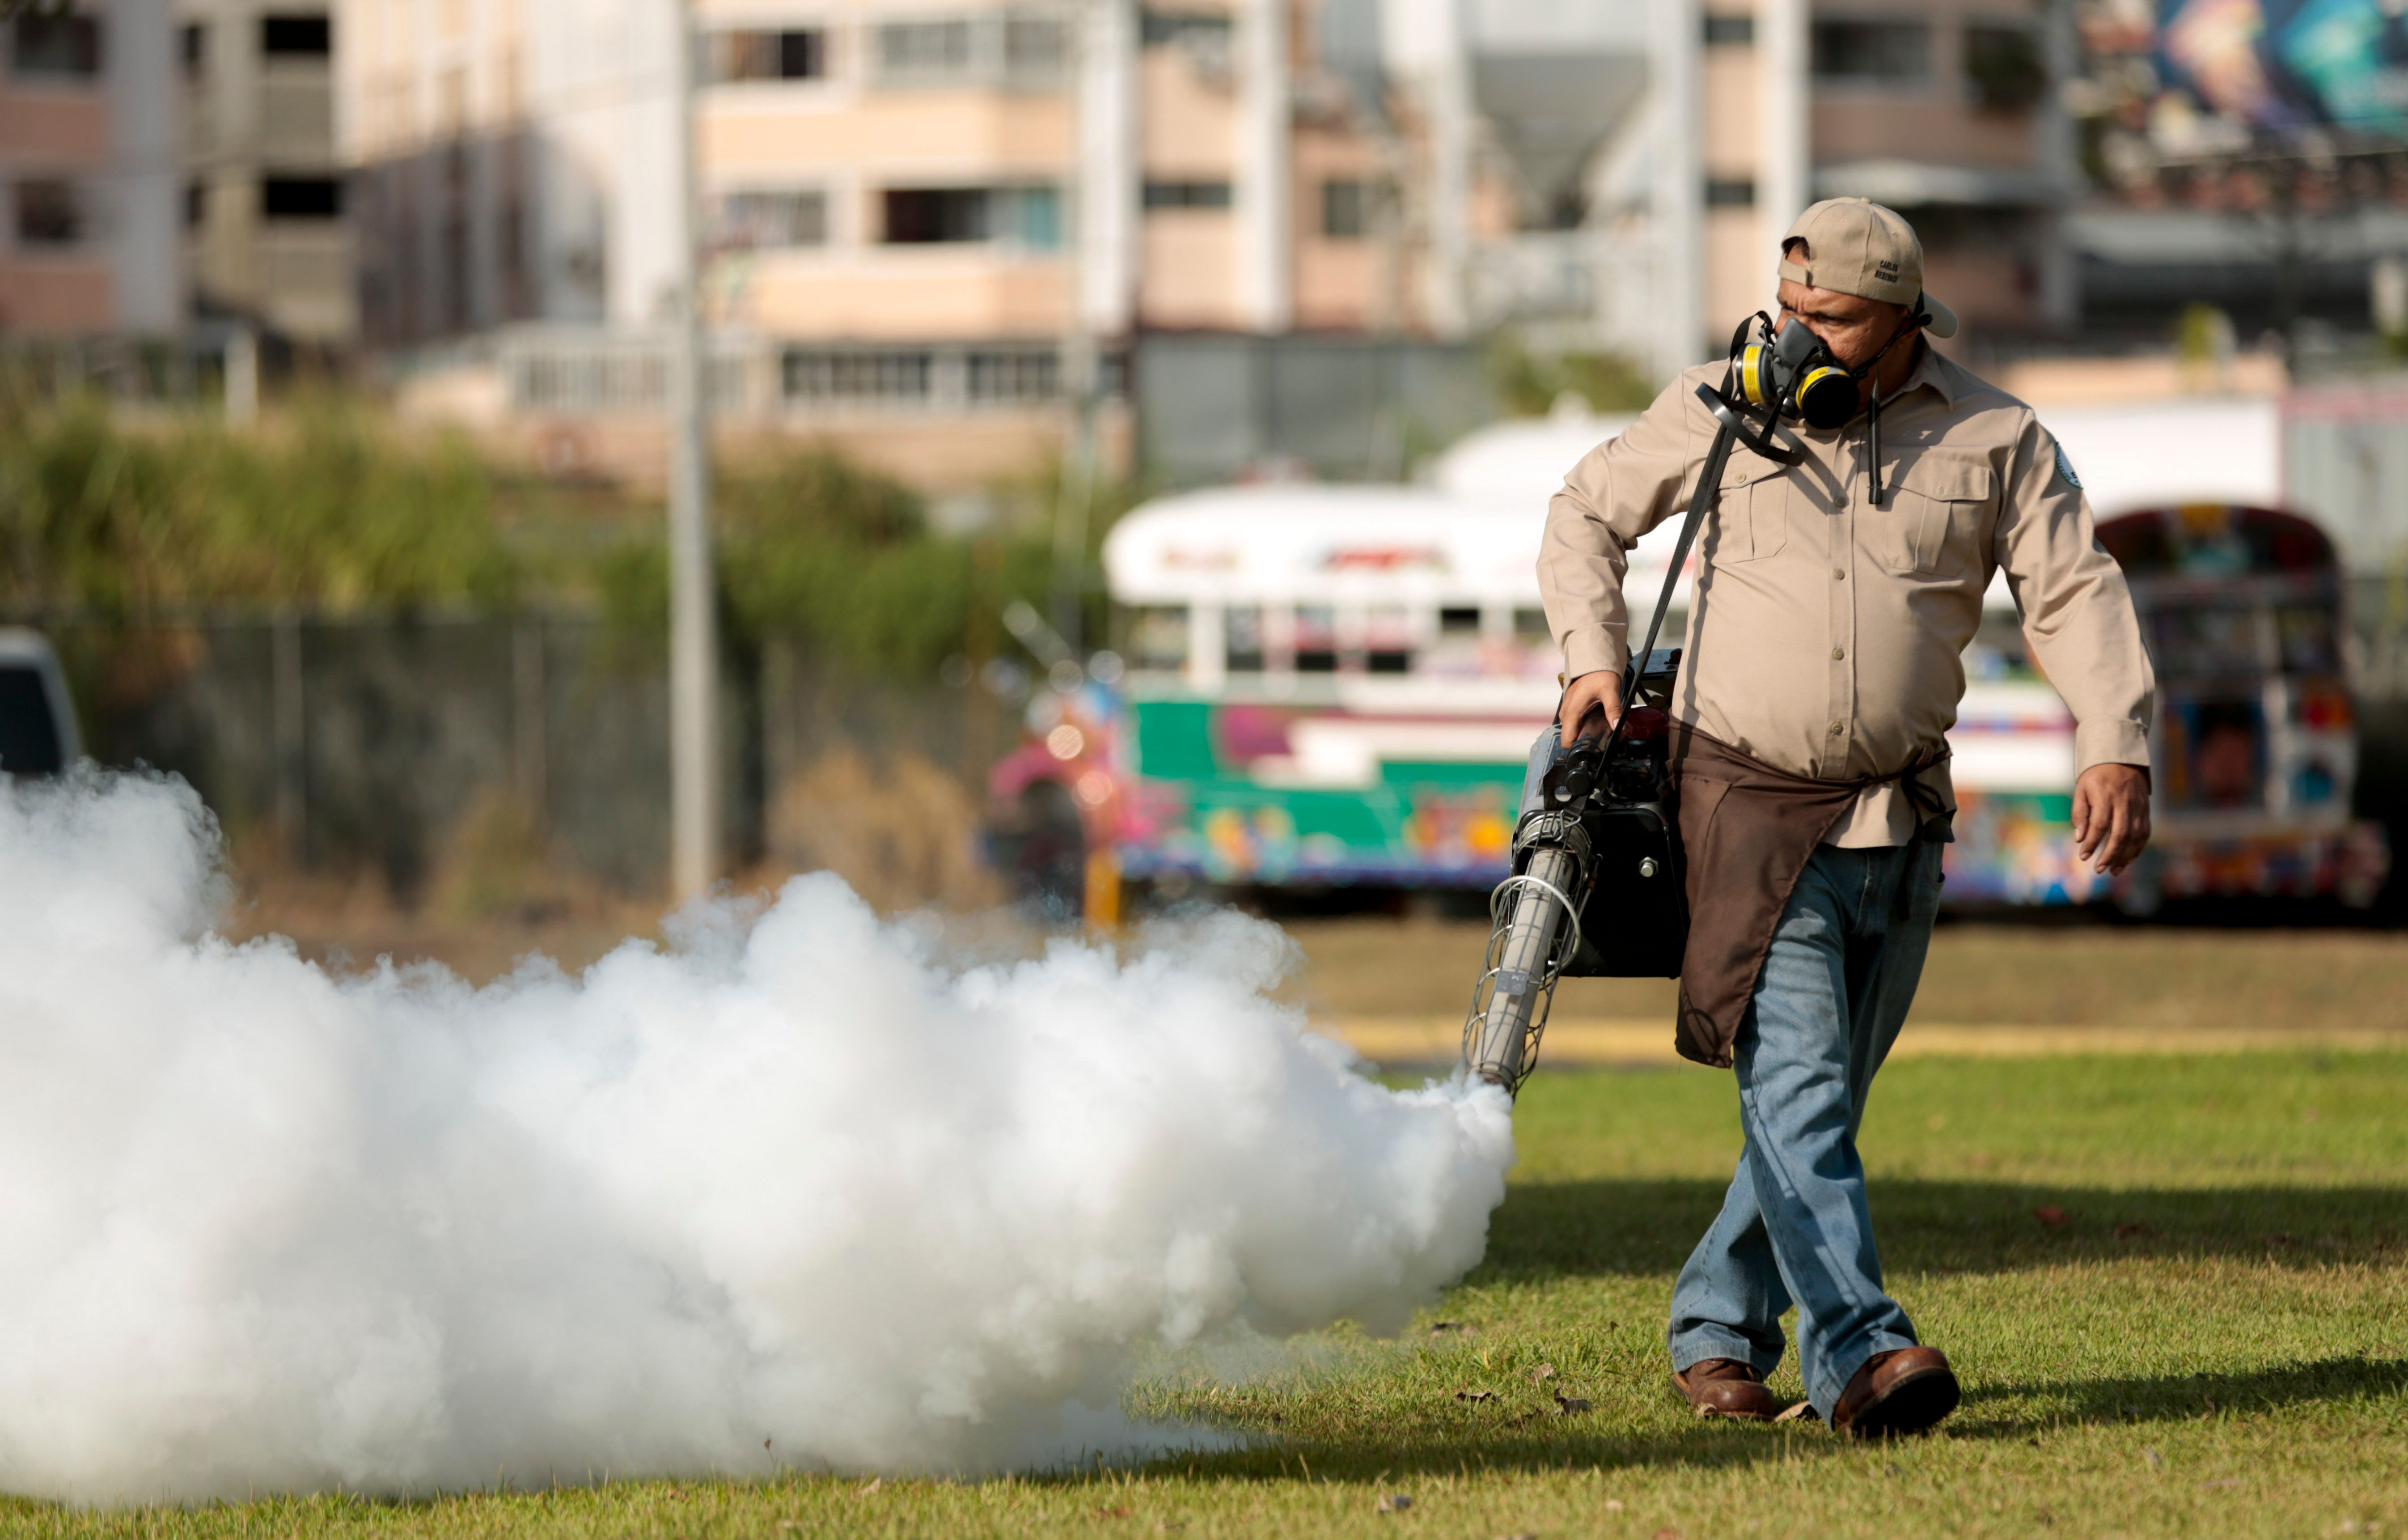 A worker fumigates for <i>Aedes aegypti</i> mosquitoes where carnival celebrations will be held in Panama City. Authorities announced on Monday that 50 cases of the Zika virus infection have been detected in Panama's sparsely populated Guna Yala indigenous area along the Caribbean coast.